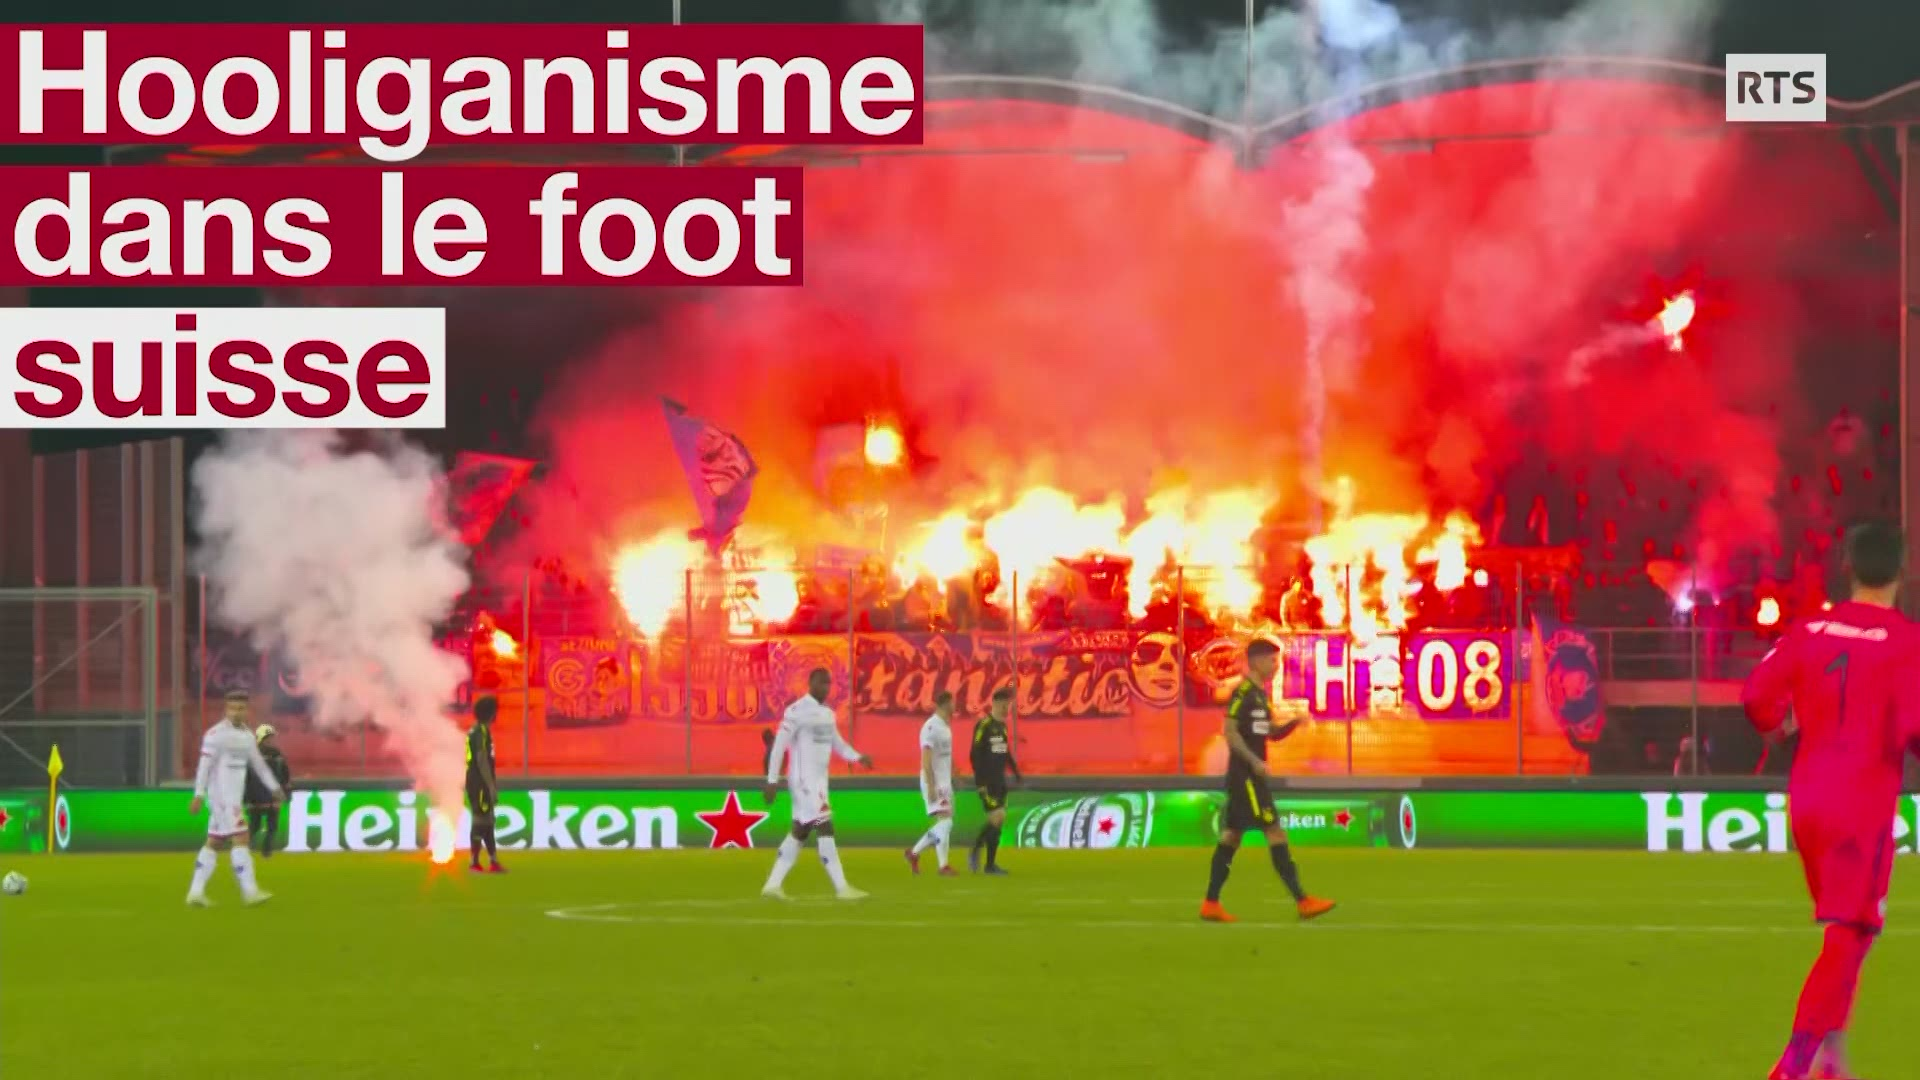 Hooligans dans le football suisse